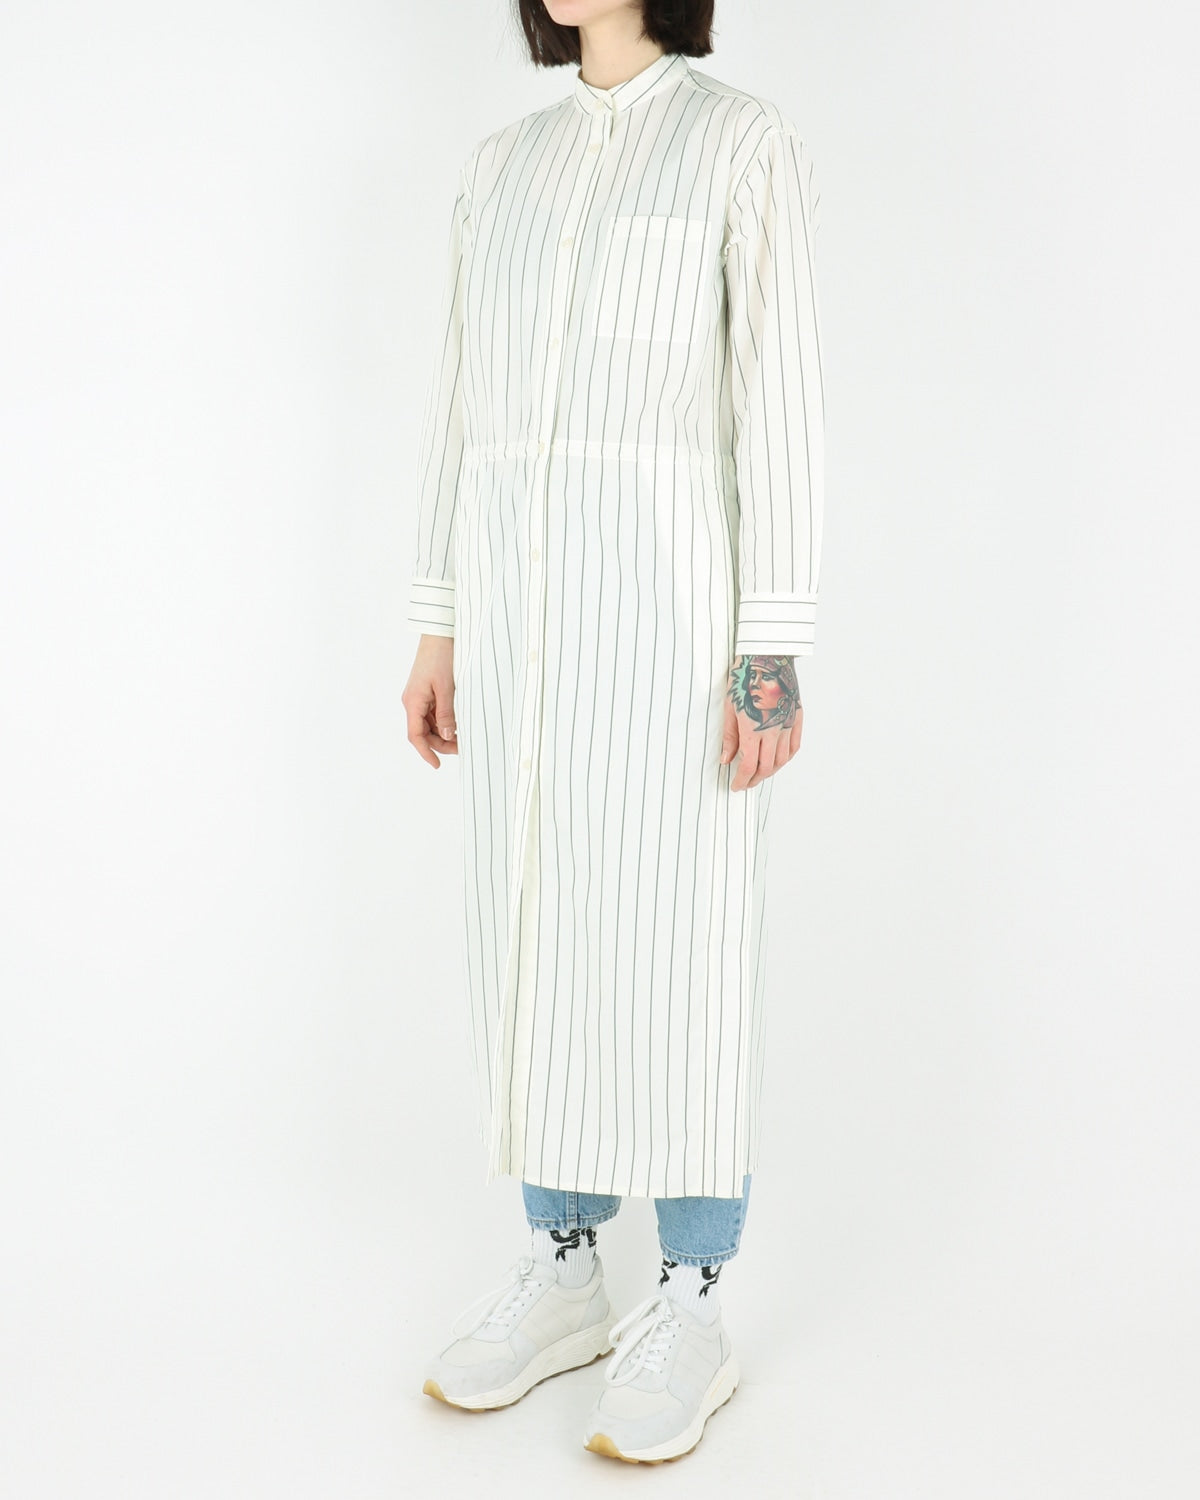 wood wood_cornelia dress_offwhite pinstripes_view_2_3